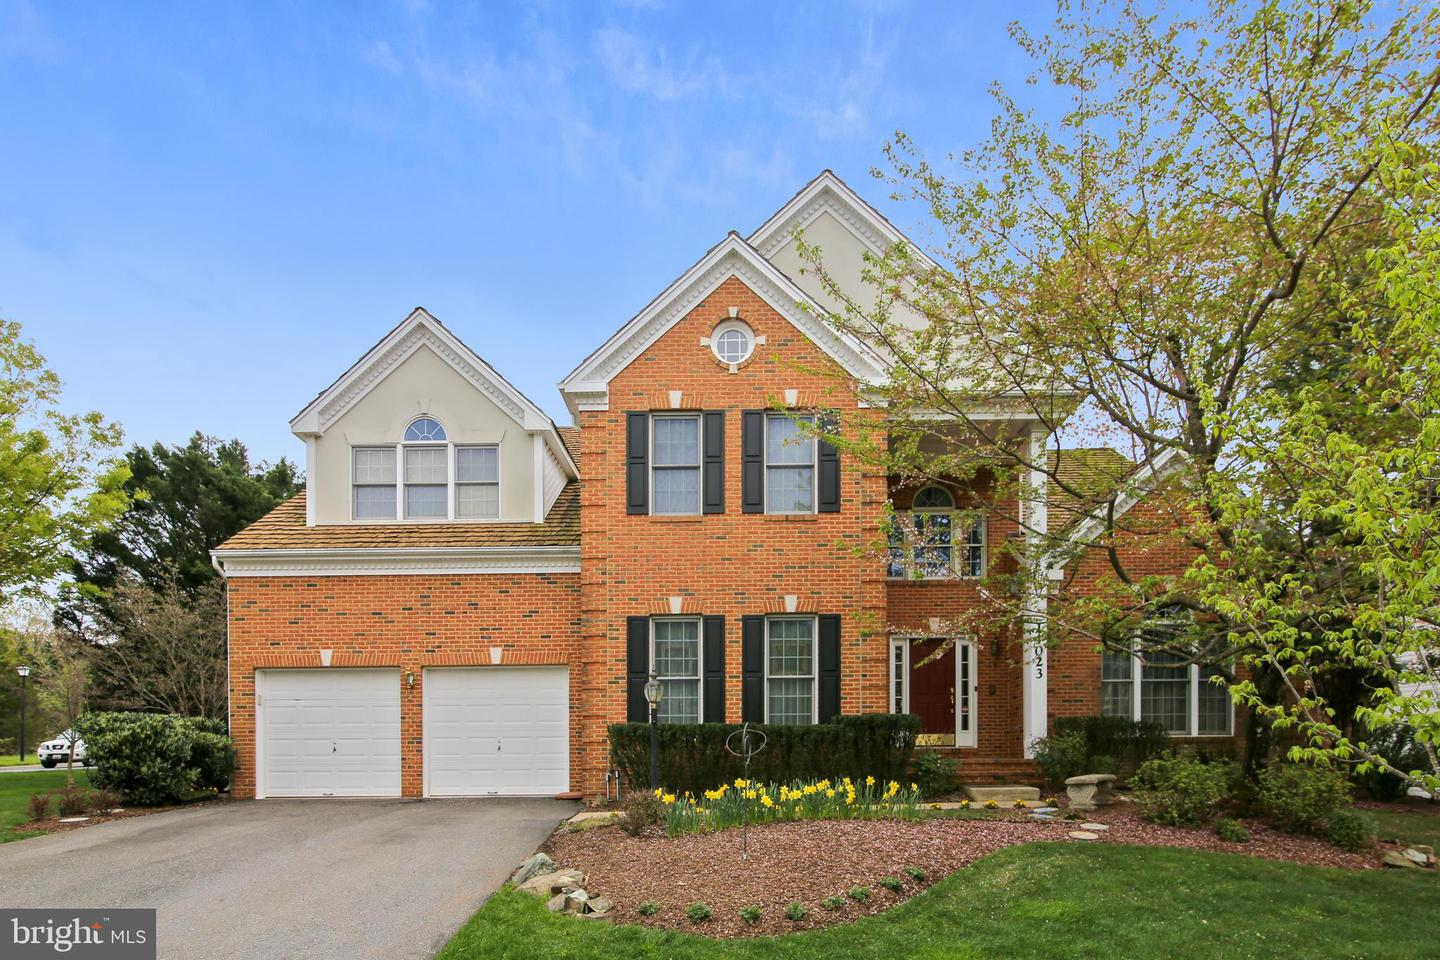 14023 LOBLOLLY TER, ROCKVILLE, Maryland 20850, 5 Bedrooms Bedrooms, ,5 BathroomsBathrooms,Single Family,For Sale,14023 LOBLOLLY TER,MDMC749264